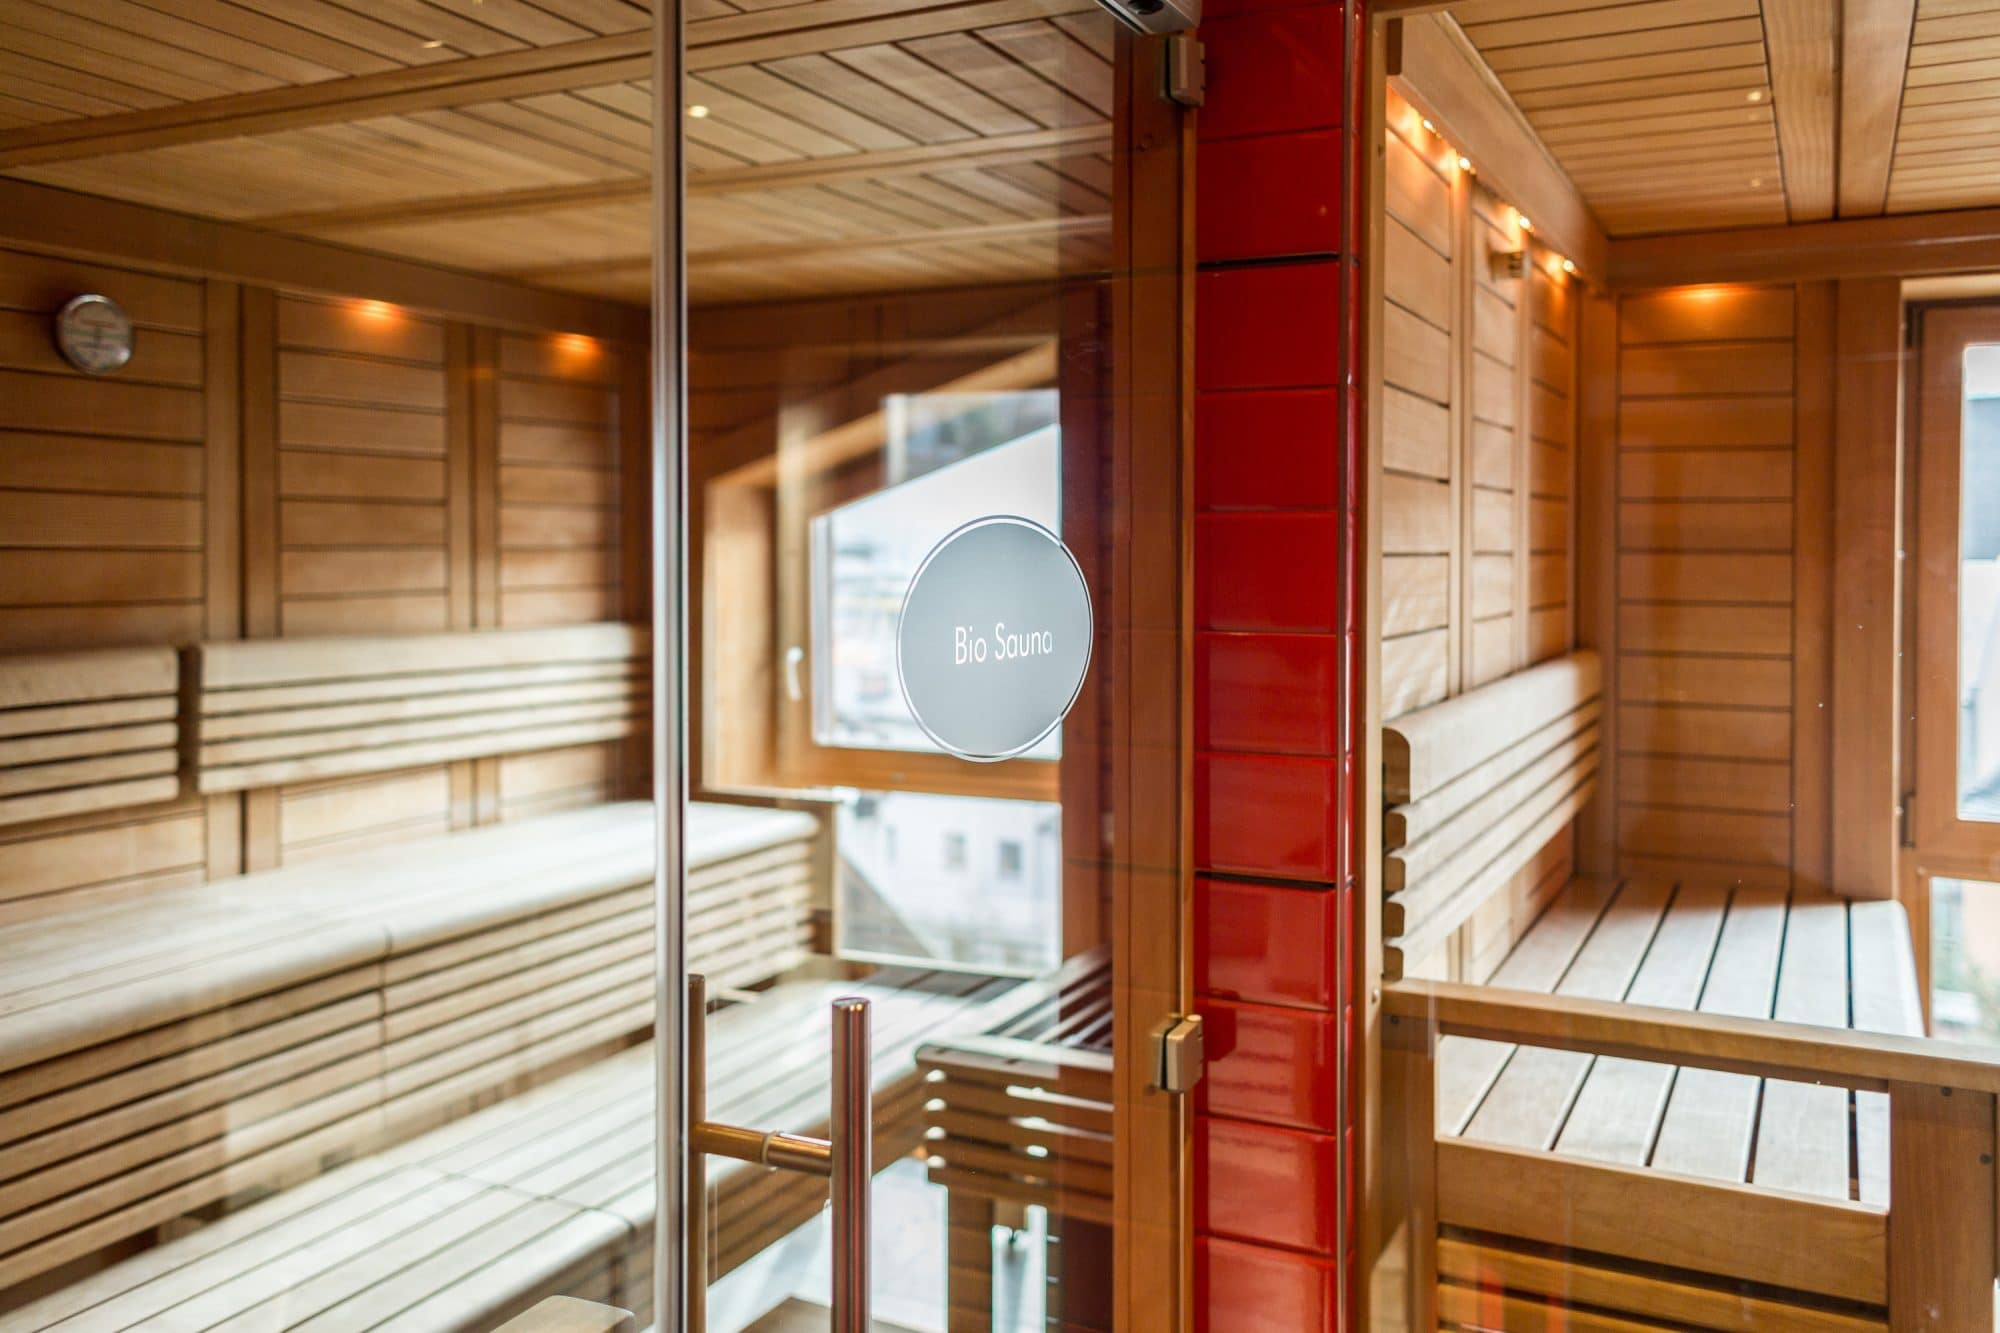 03-BIO-Sauna-Wellness